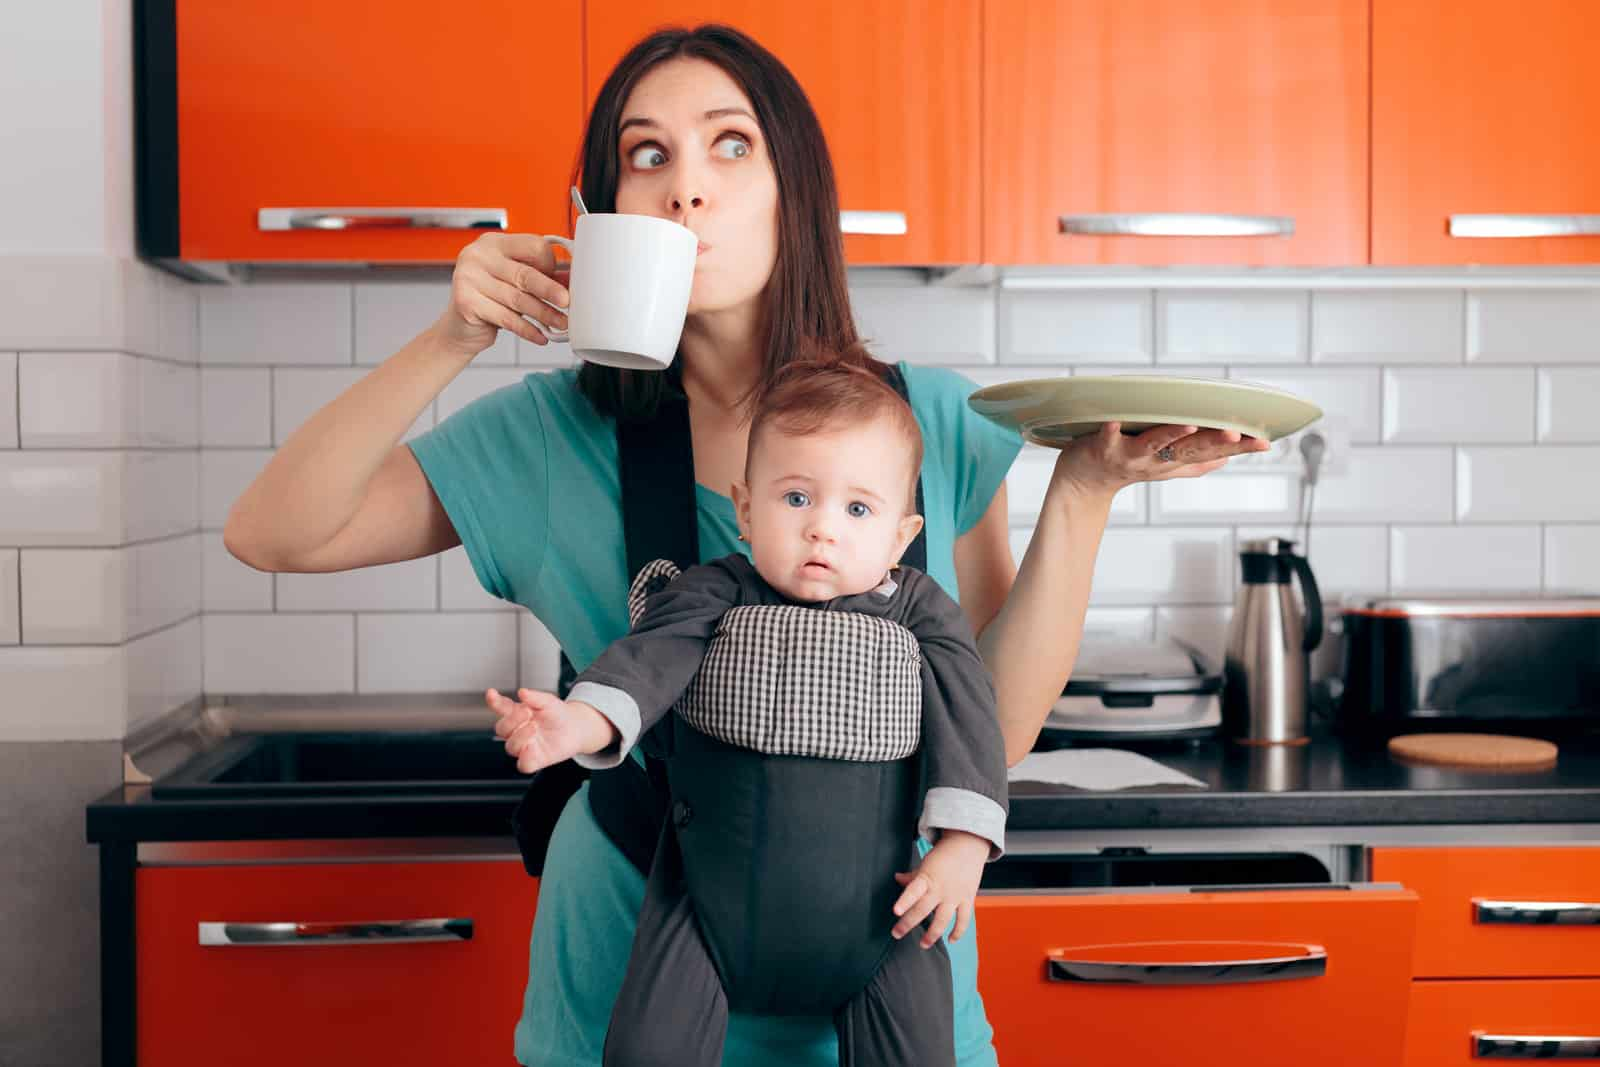 Busy Multitasking Mom with Baby, Coffee Mug and Dishes